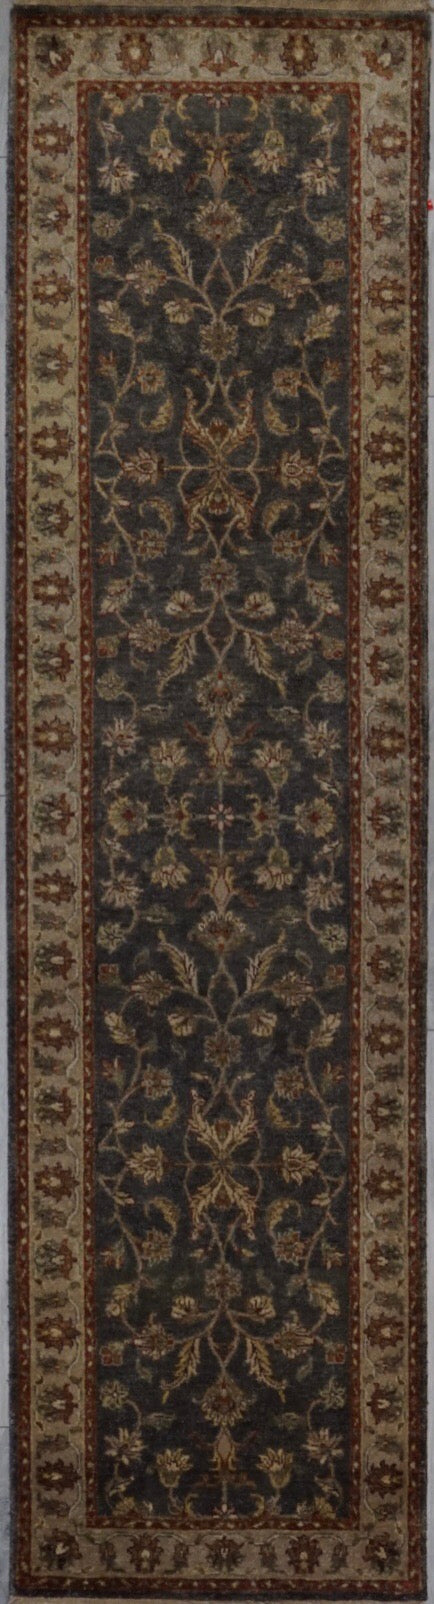 India Chobi Hand knotted Wool 3X10